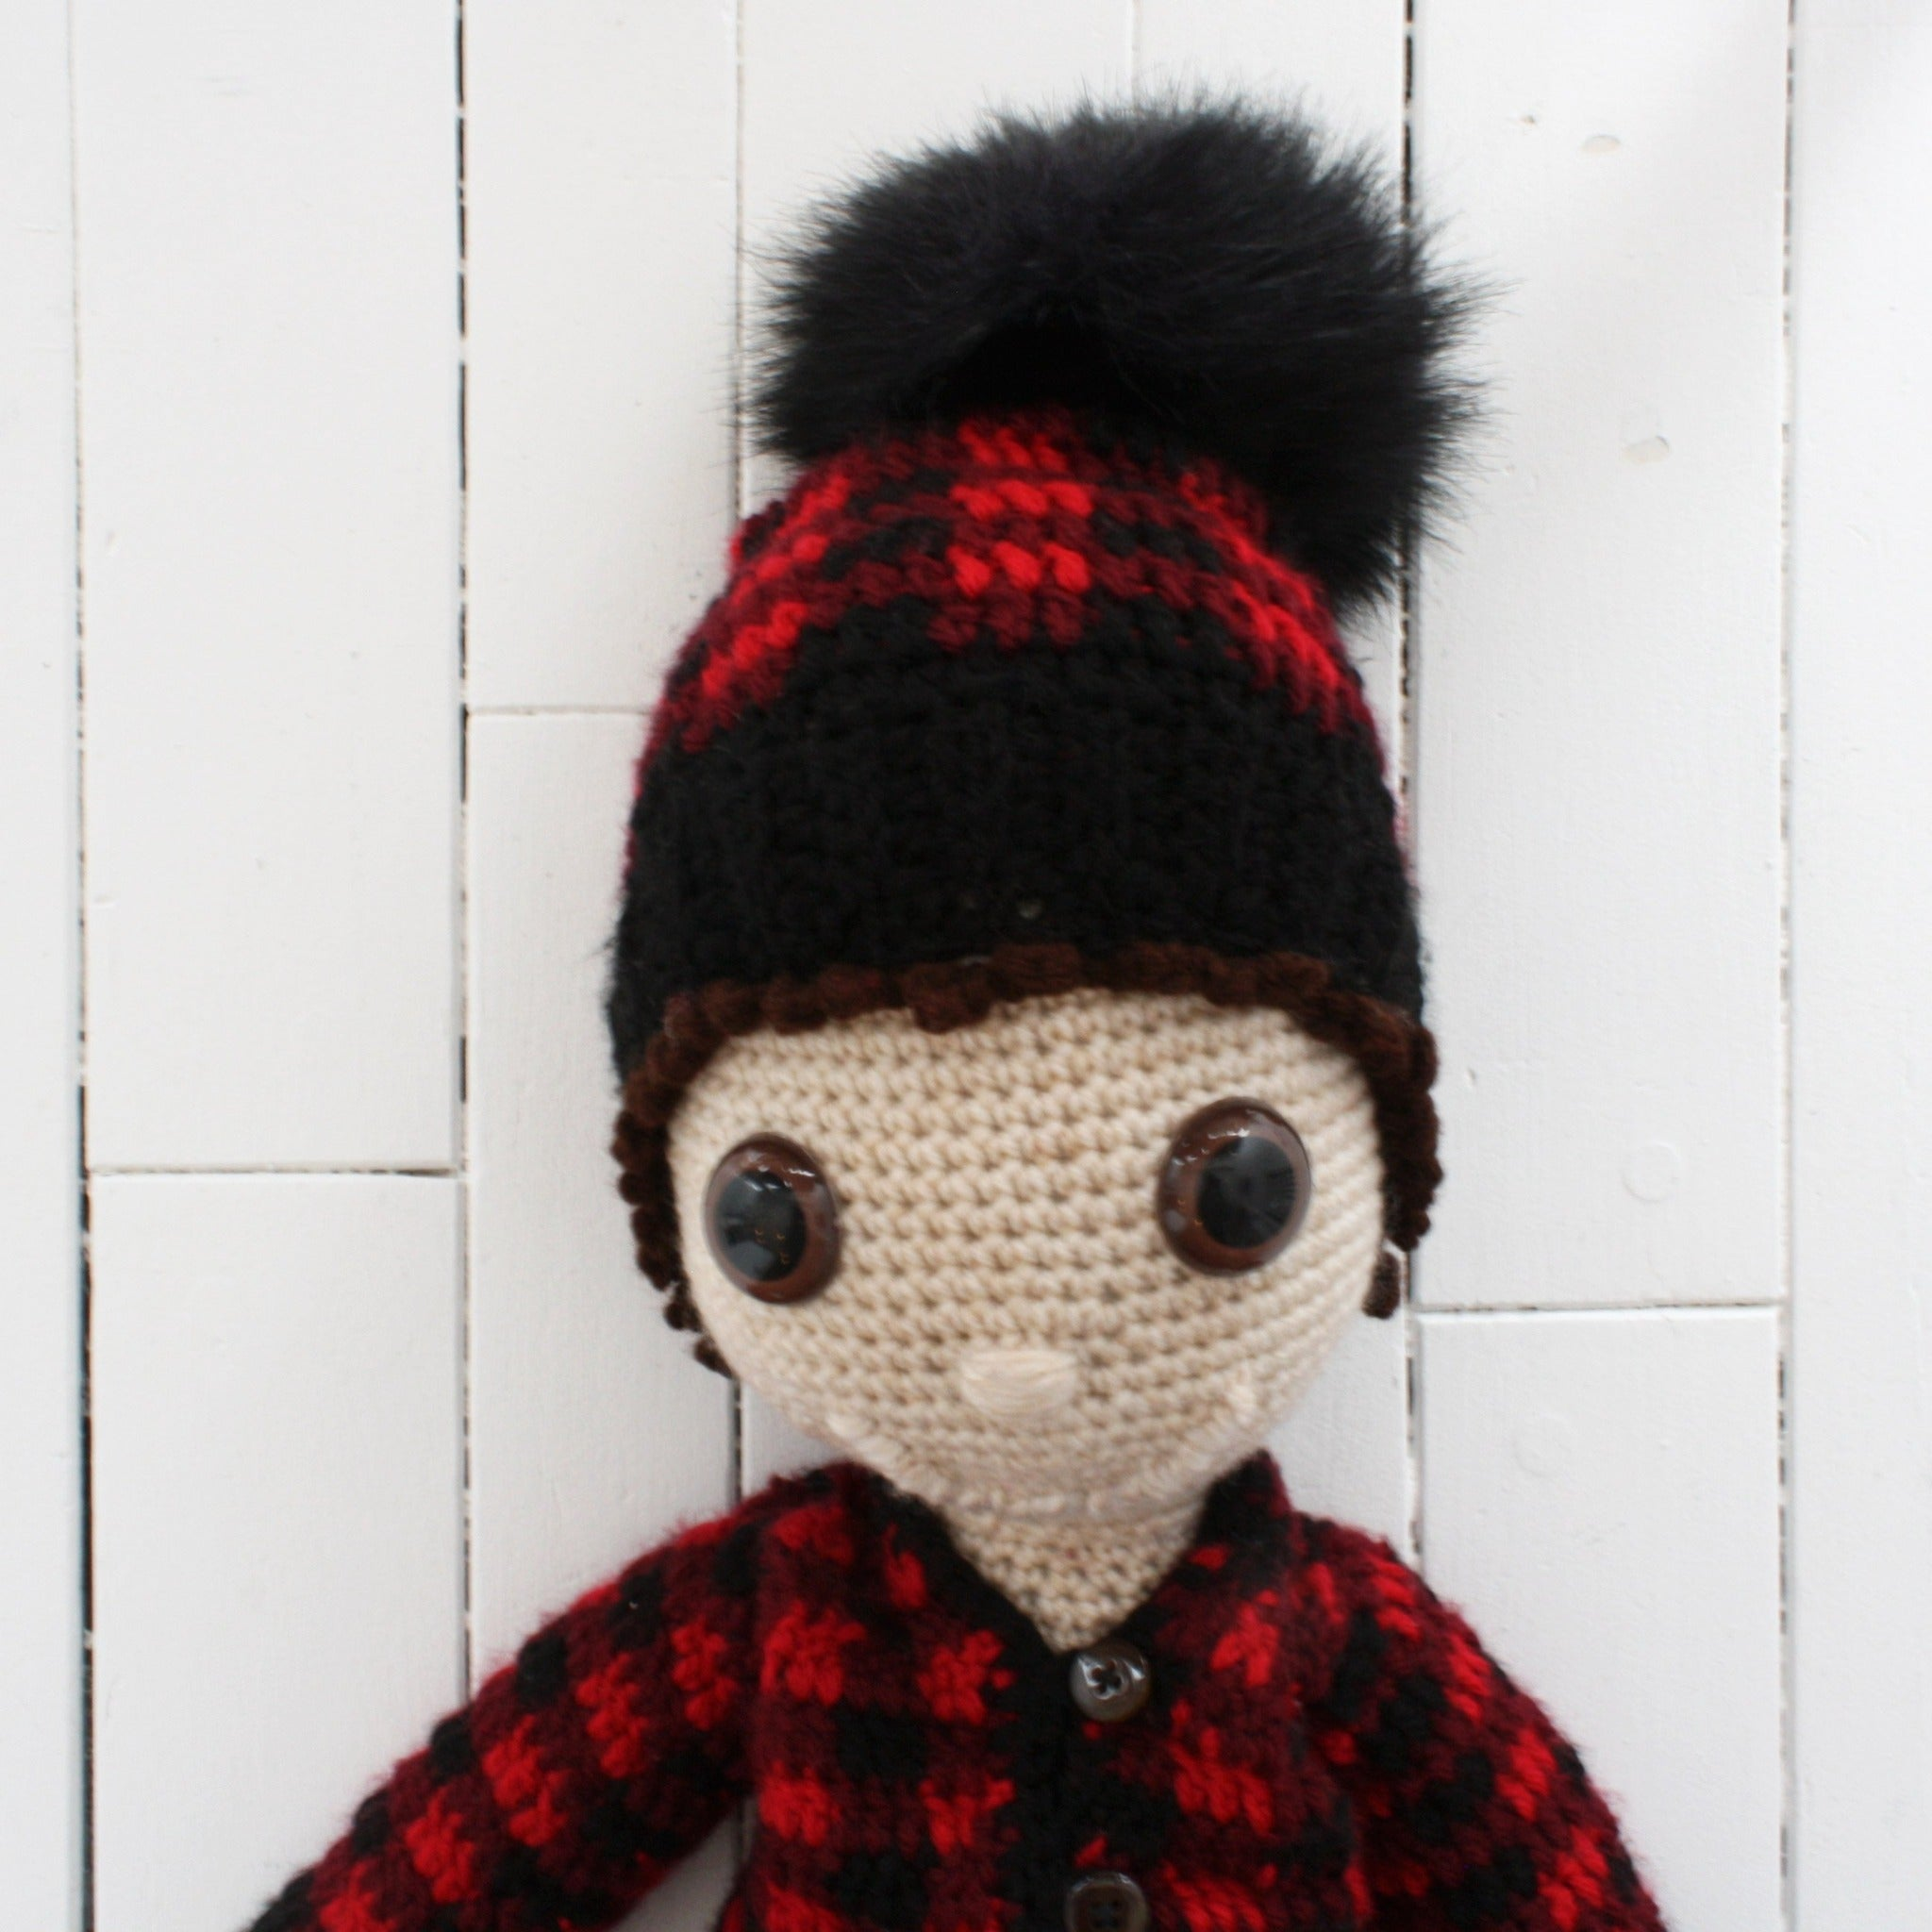 plush doll with winter hat and sweater